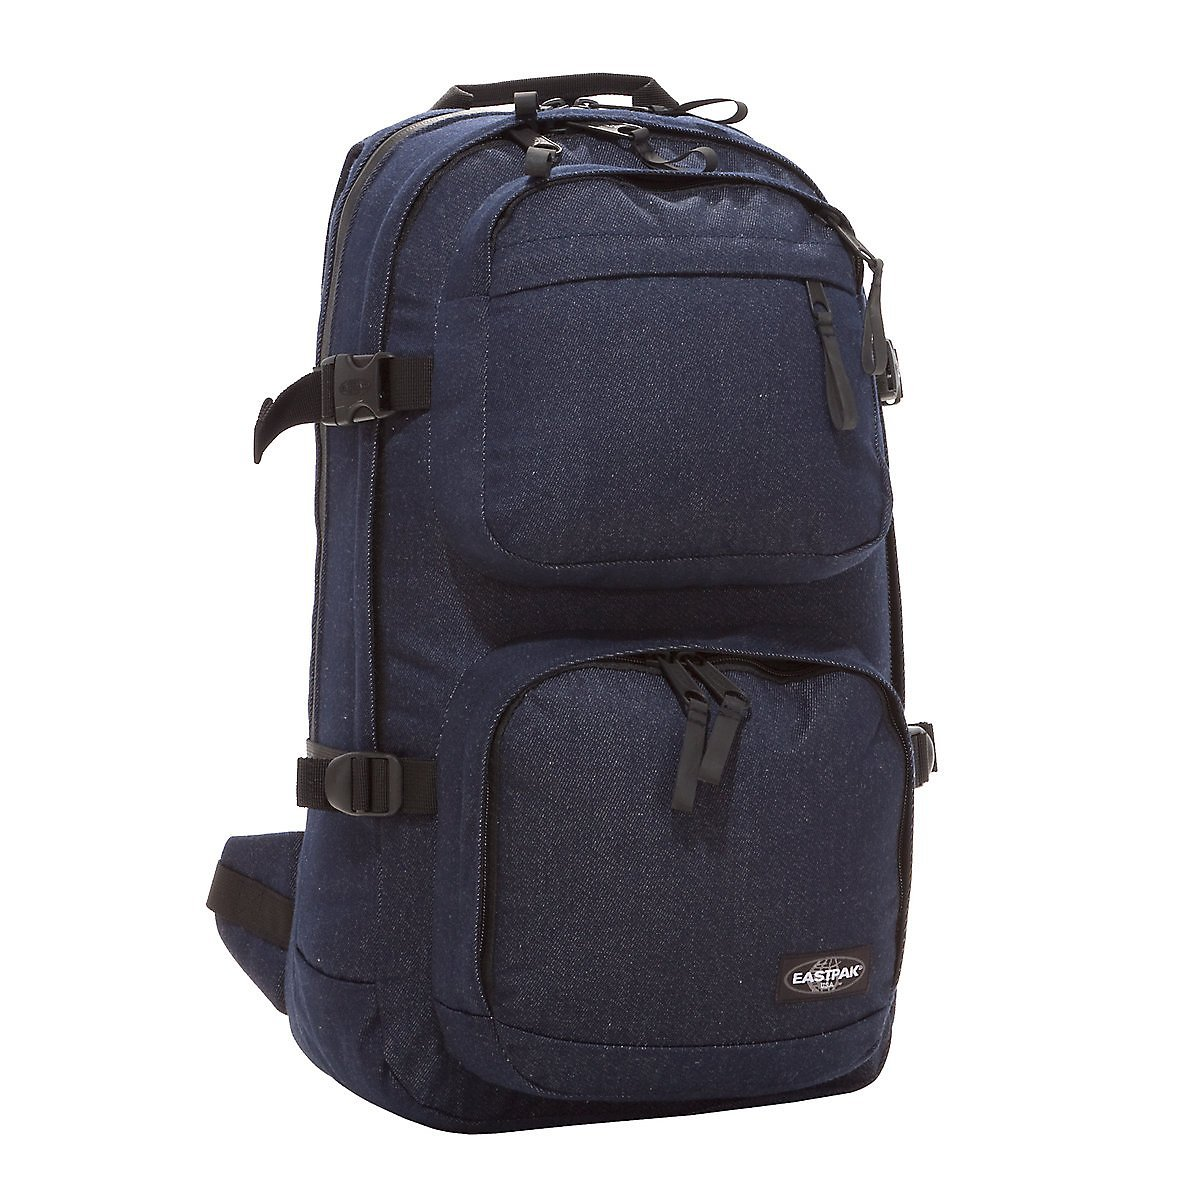 A Eastpak Sac 5poches Dos Sac Eastpak pxUxqwSHt